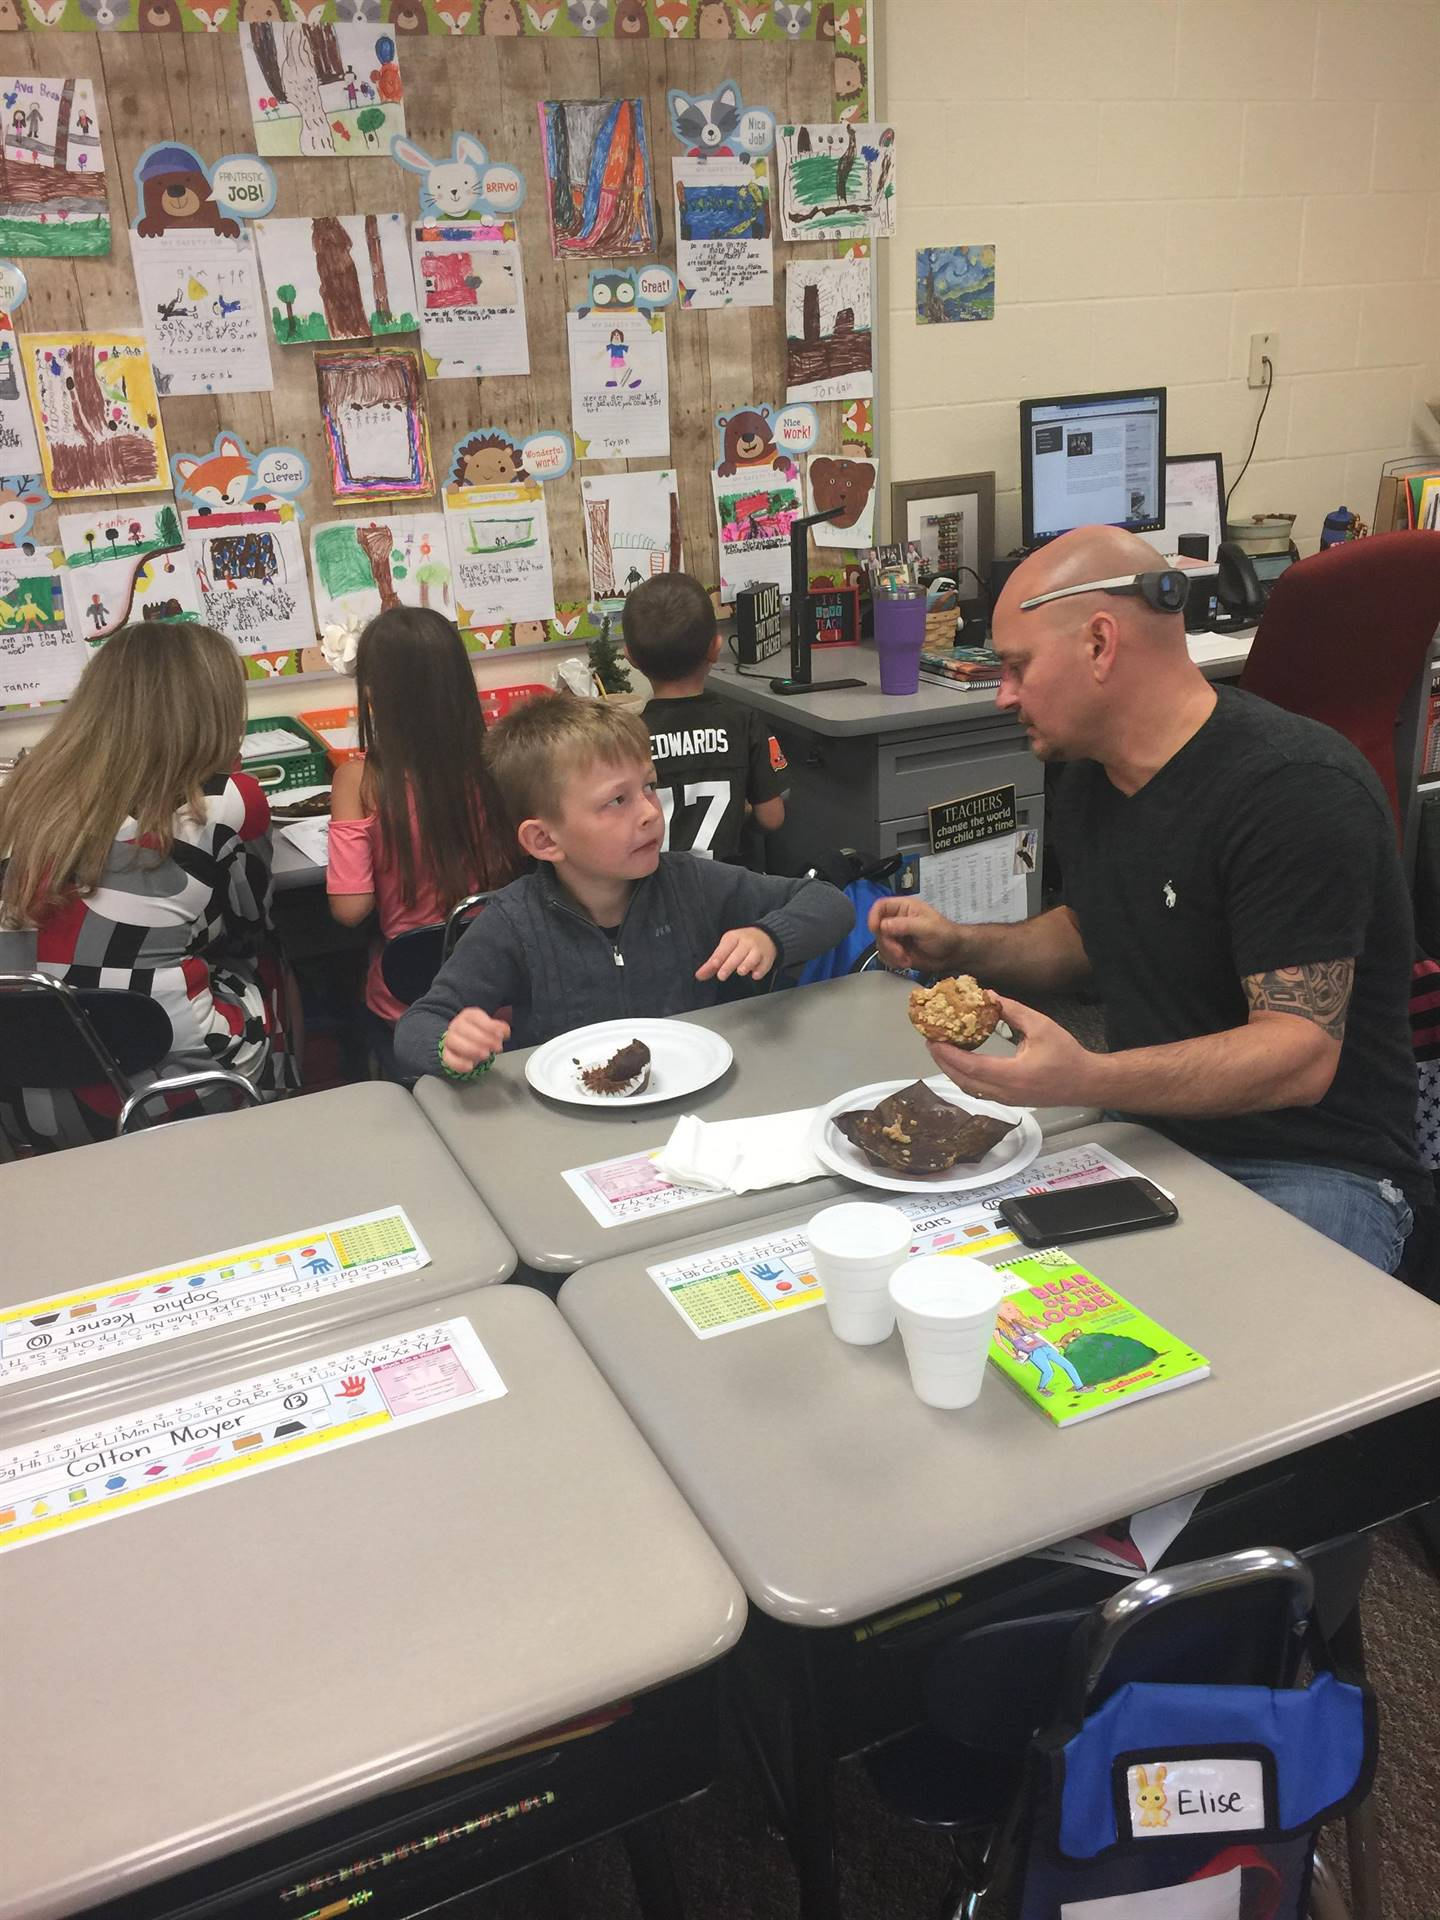 Parents/Grandparents joined our class today for some reading and breakfast!